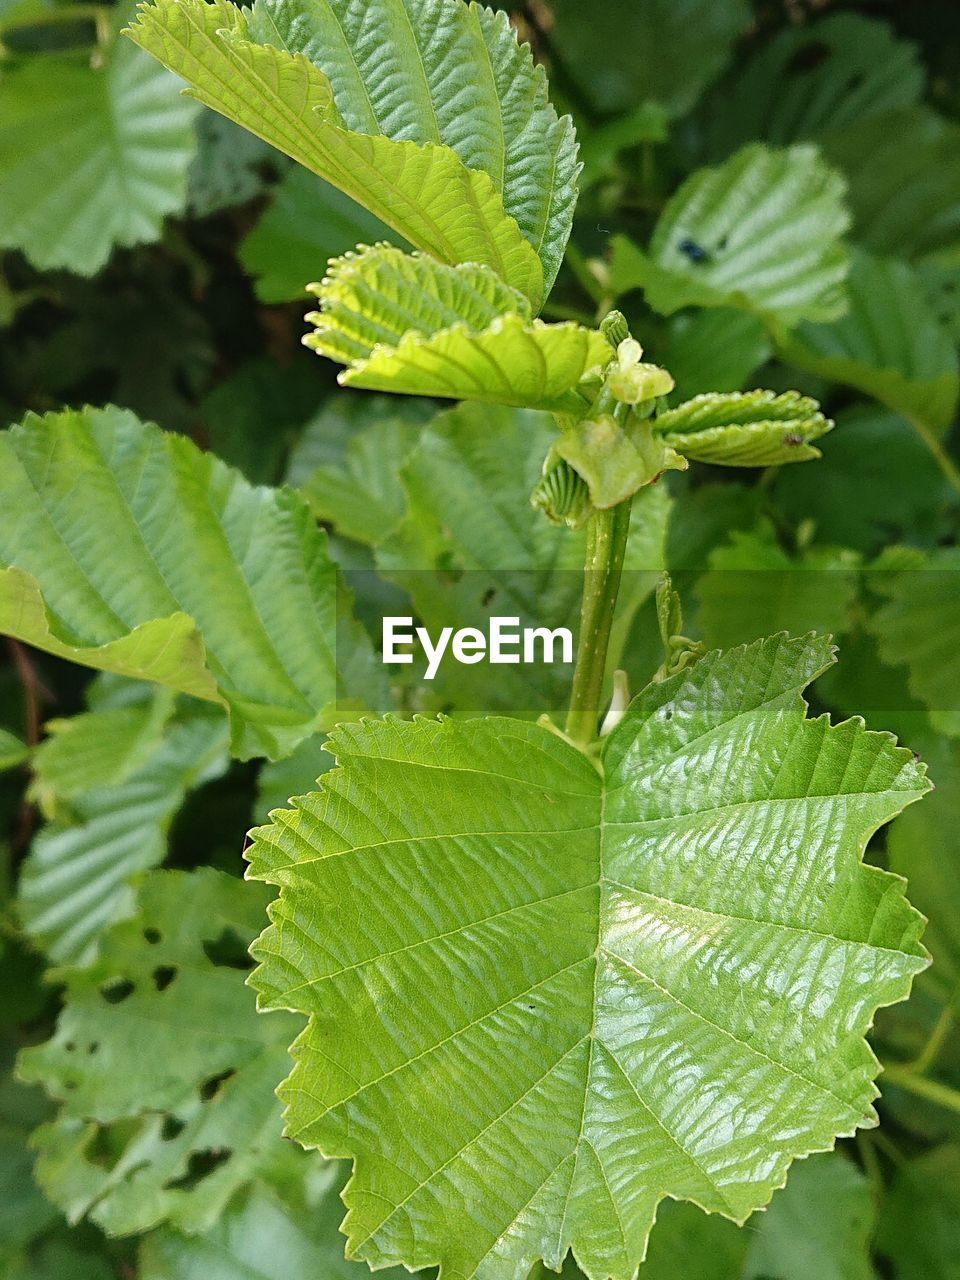 leaf, plant part, green color, growth, plant, close-up, beauty in nature, nature, focus on foreground, day, freshness, no people, leaf vein, outdoors, food and drink, leaves, food, sunlight, tranquility, high angle view